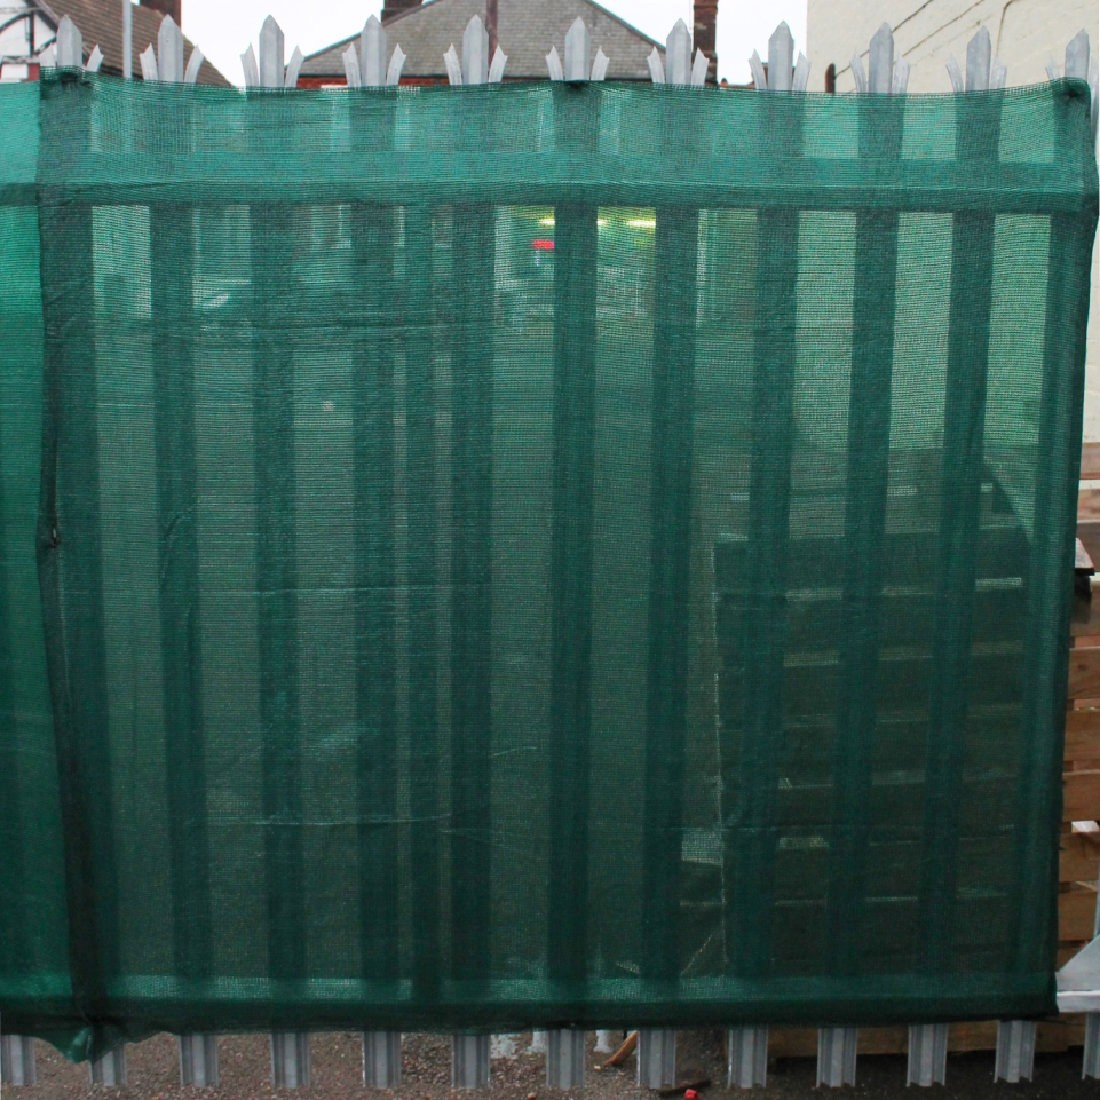 80% Shade Netting for Privacy - 1m, 1.5m or 2m High - 50m Roll